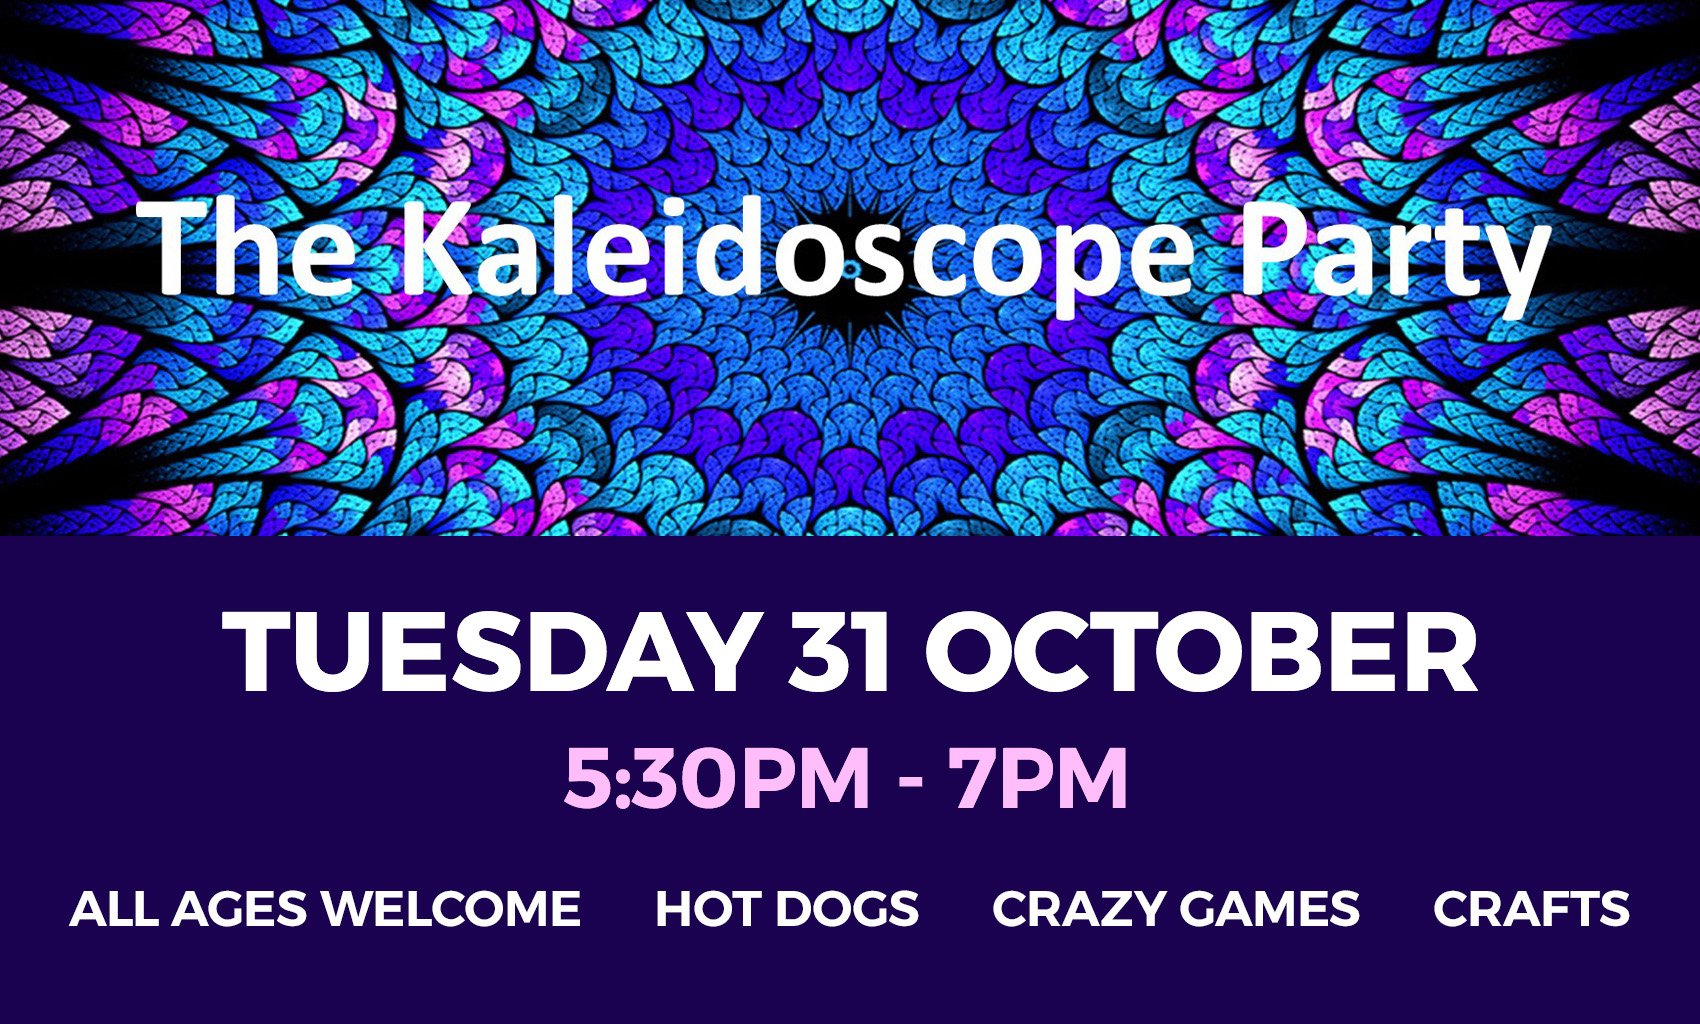 The Kaleidoscope Party st Church of Our Saviour, Chelmer Village